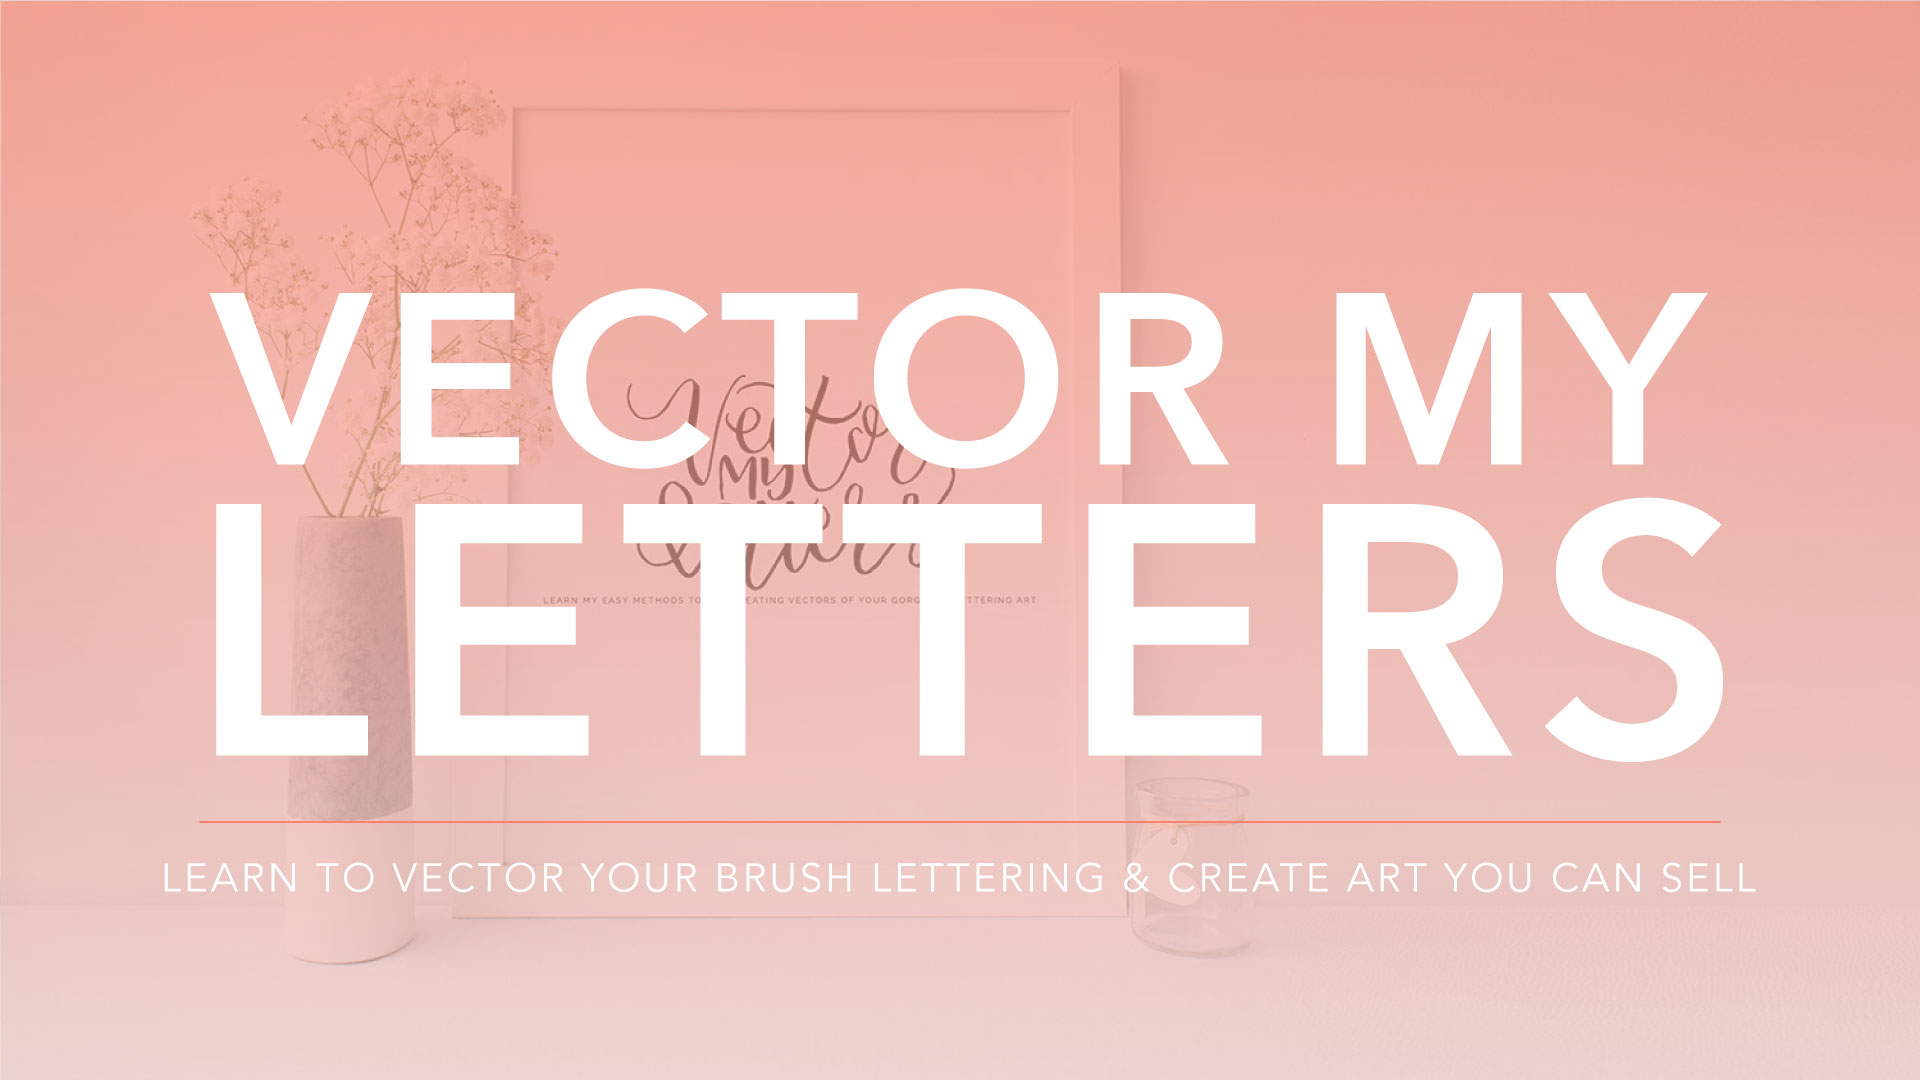 Vector My Letters is an online self-paced ecourse that teaches you how to digitize your lettering projects from hand lettering to calligraphy to brush lettering, and how to sell them!